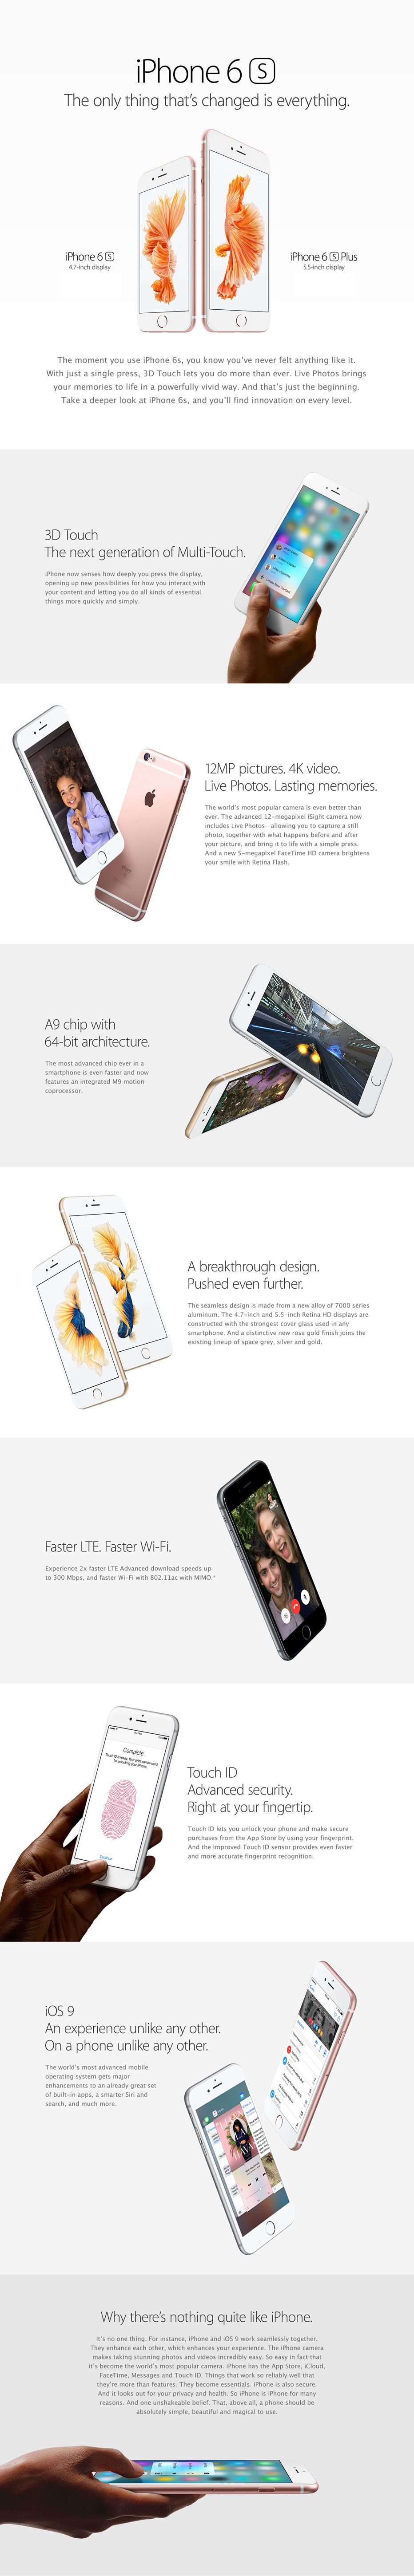 iPhone 6s and iPhone 6s Plus Features